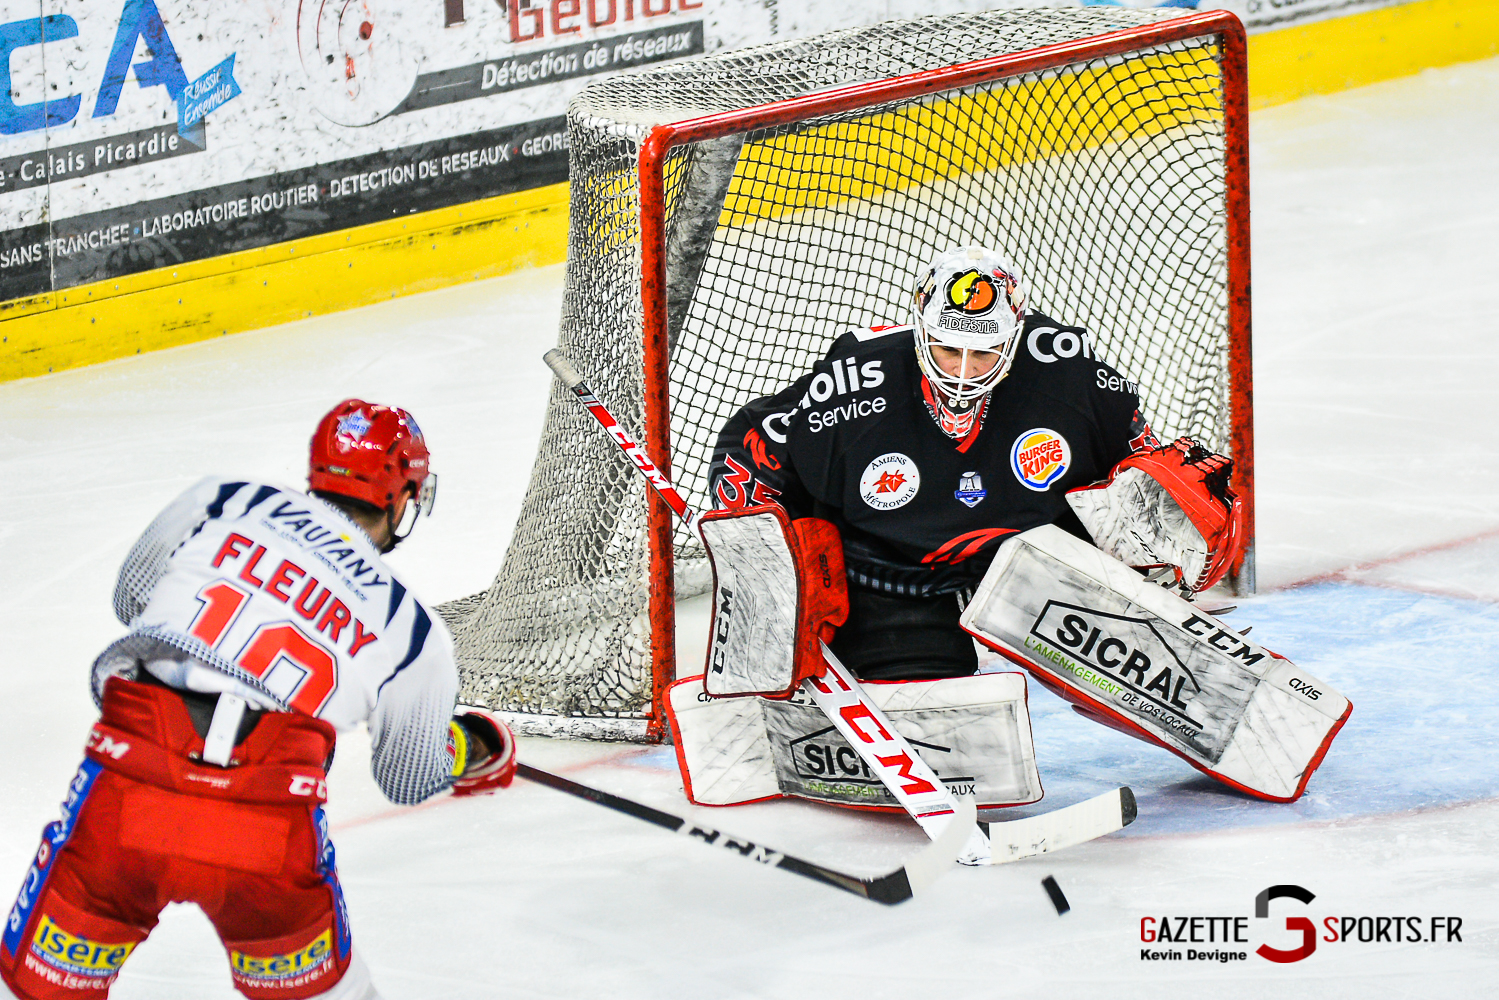 hockey sur glace amiens vs grenoble 20 21 kevin devigne gazettesports 45